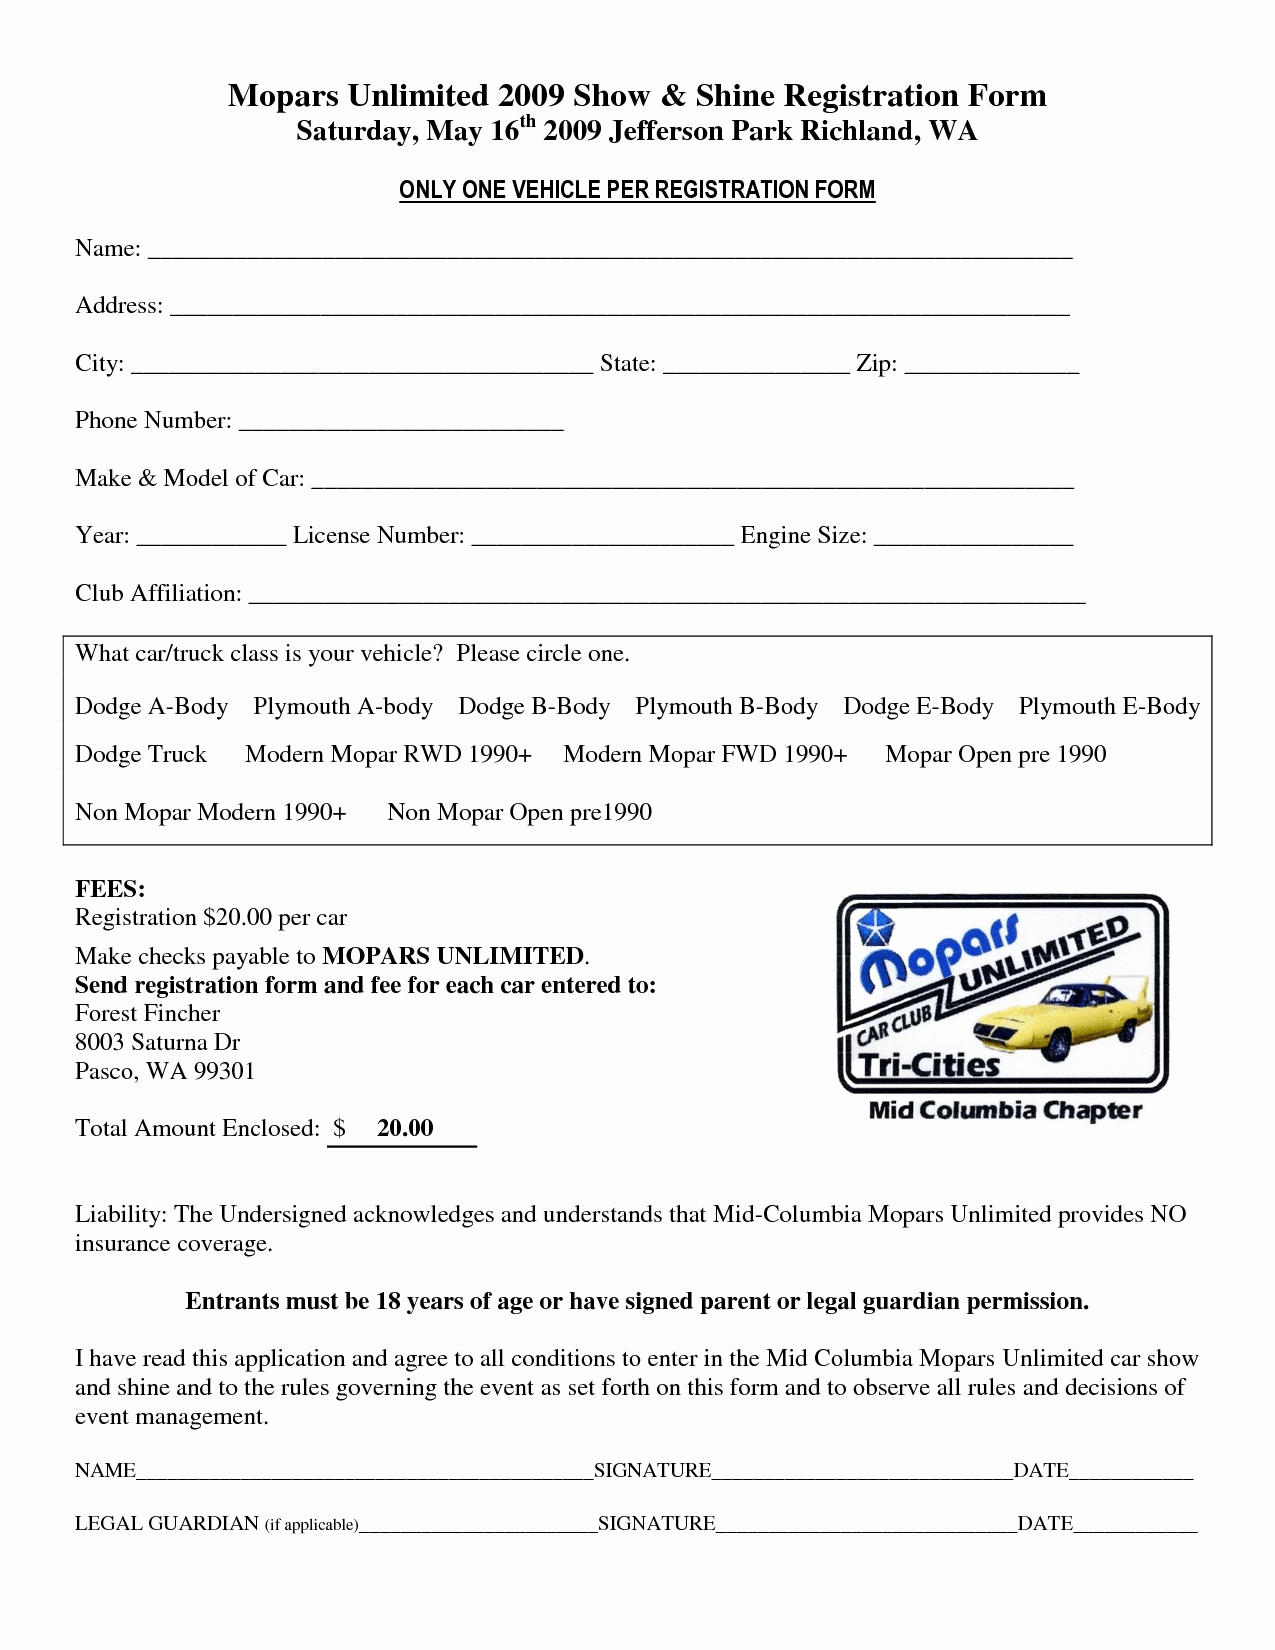 Registration form Template Word New Car Show Registration form Templates